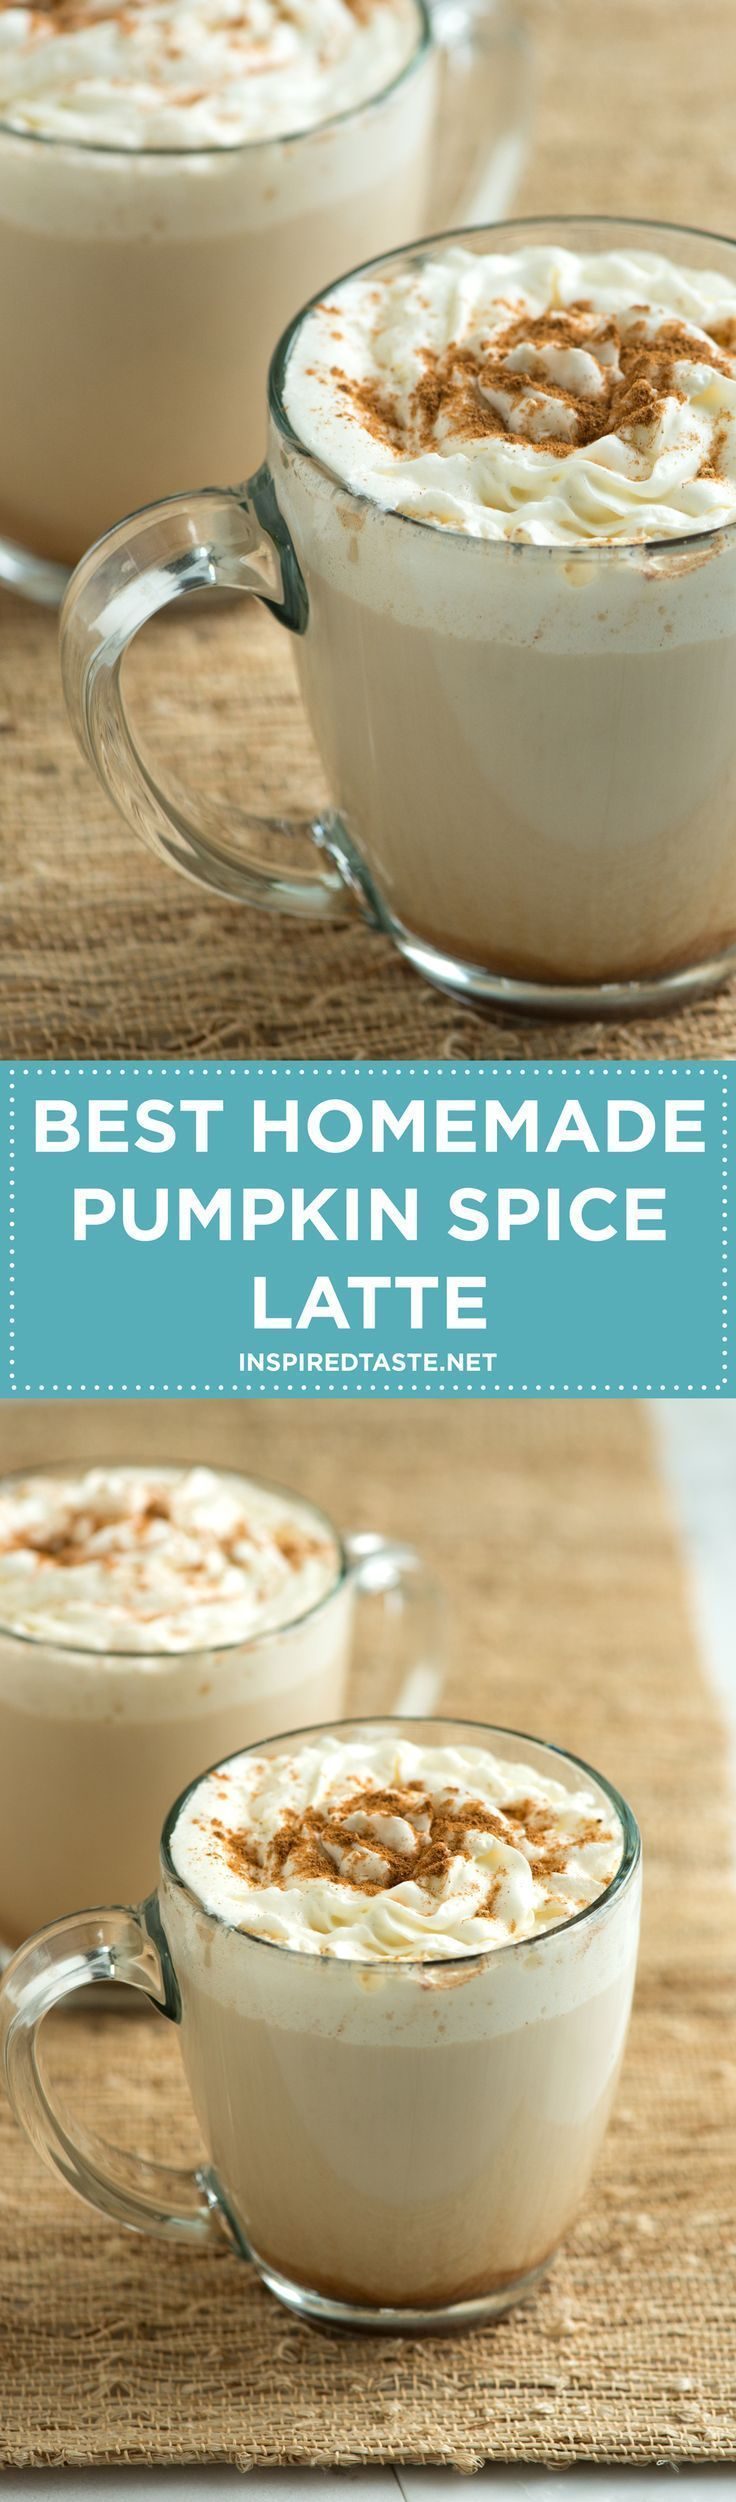 Homemade (and EASY) Pumpkin Spice Lattes! Get the recipe on inspiredtaste.net